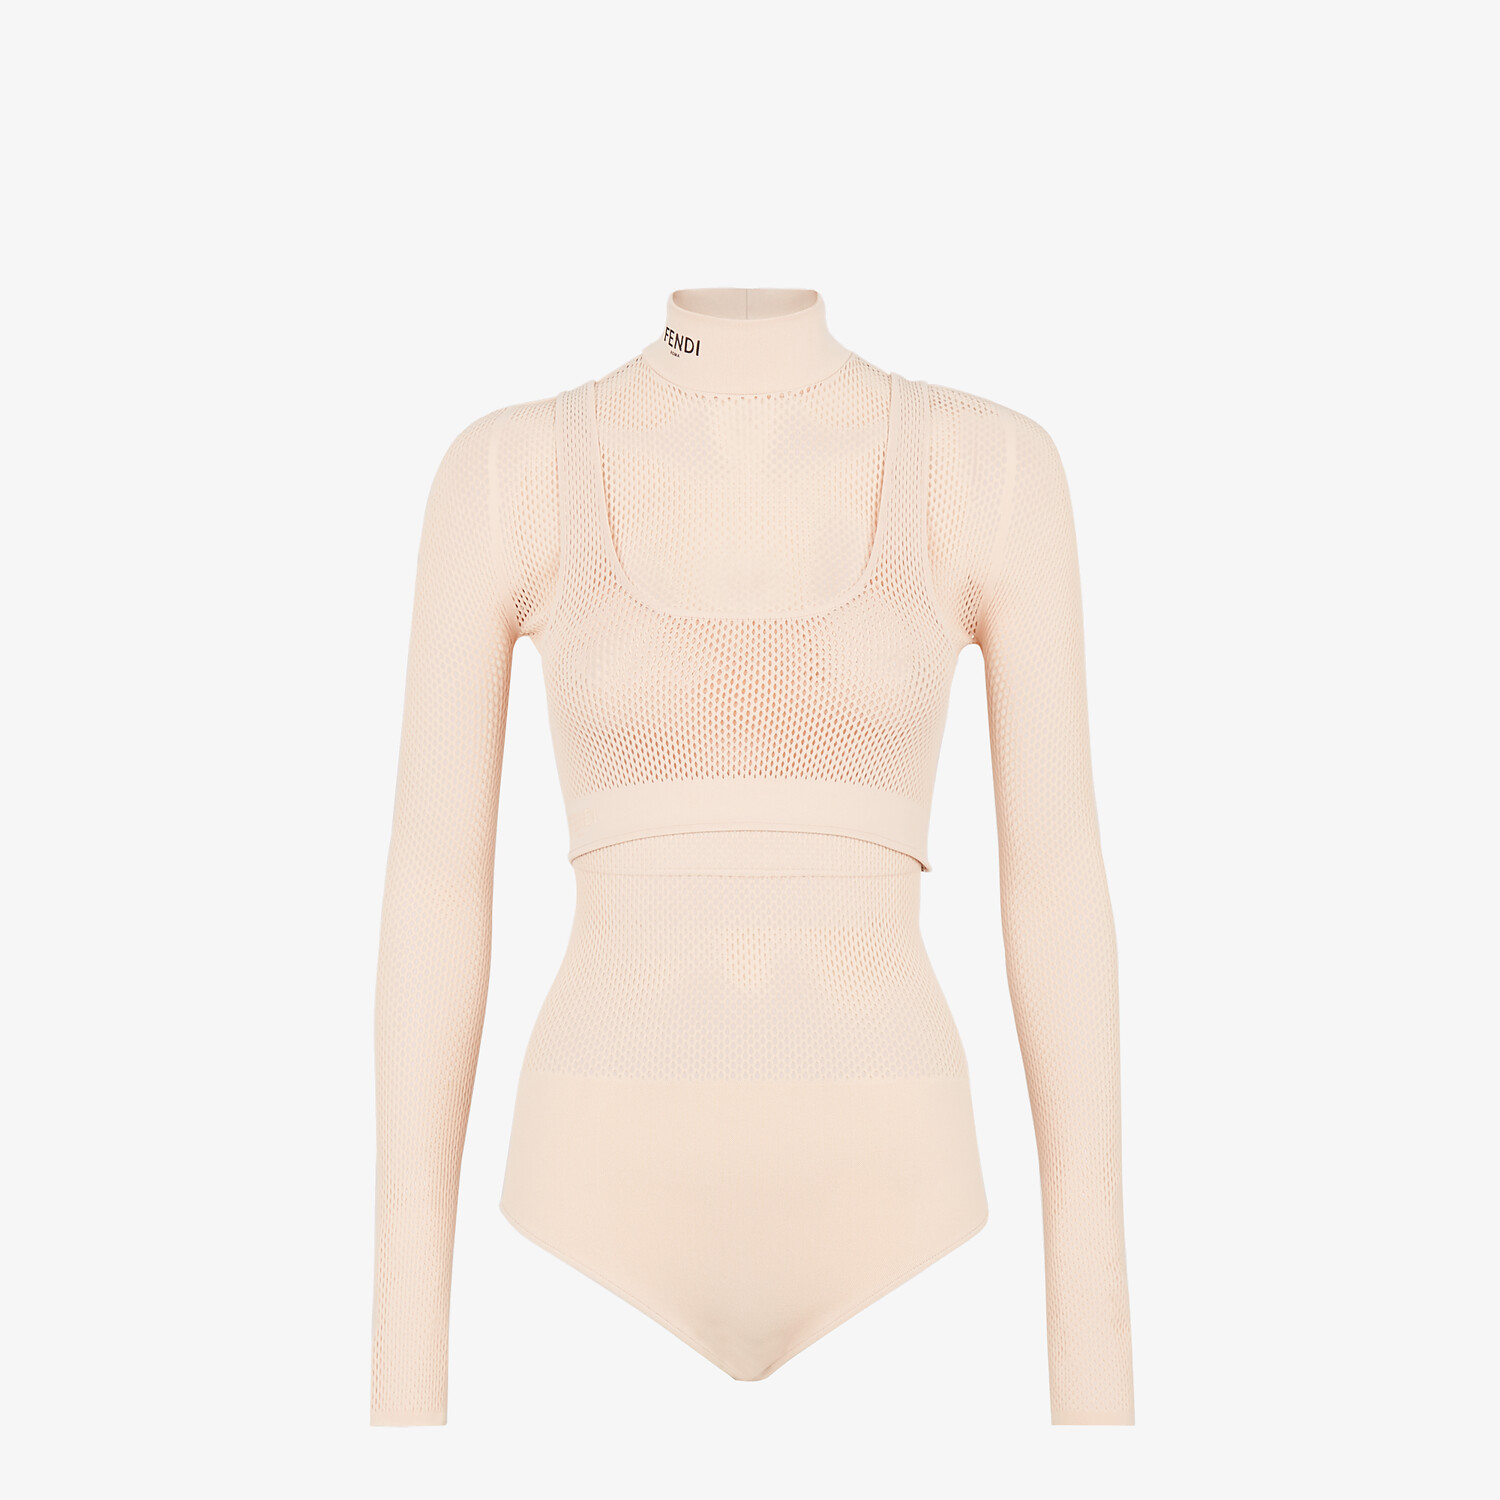 FENDI BODYSUIT - Pink mesh body - view 1 detail